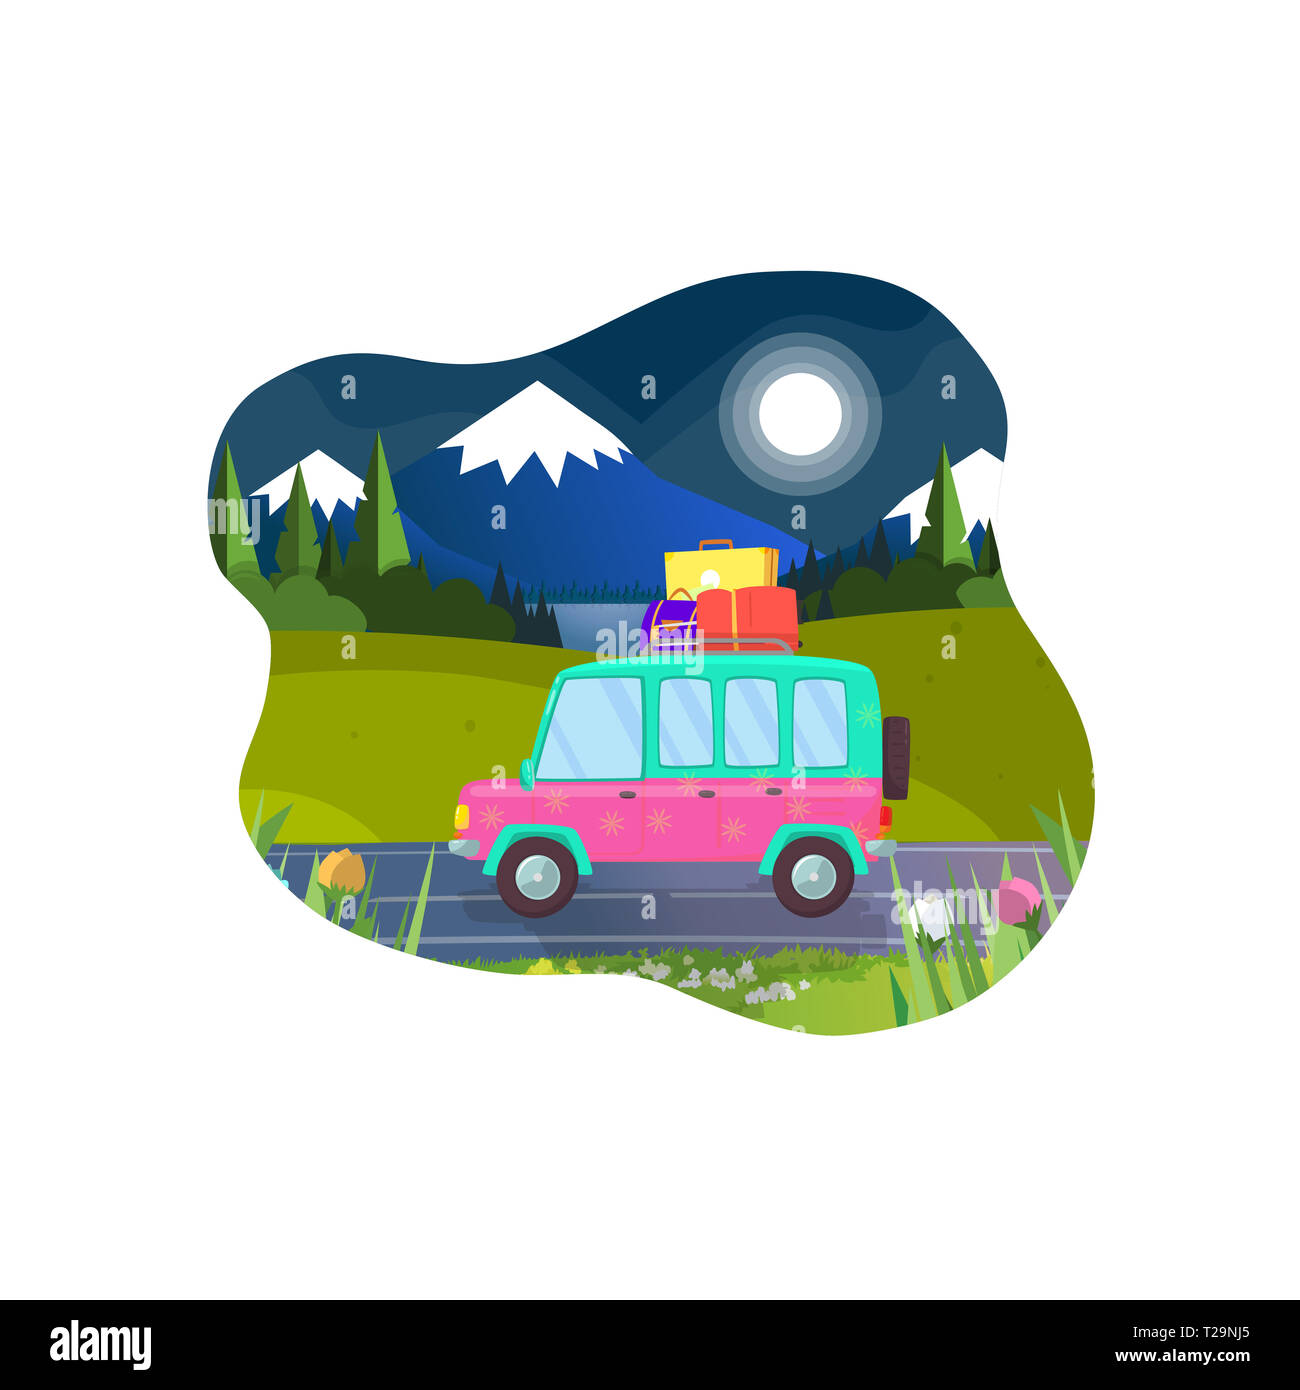 Car With Luggage on Roof Ready for Summer Vacation and Camping. Hatchback Driving along Mountains Landscape at Night Time. Moon Shining. Friends or Fa - Stock Image